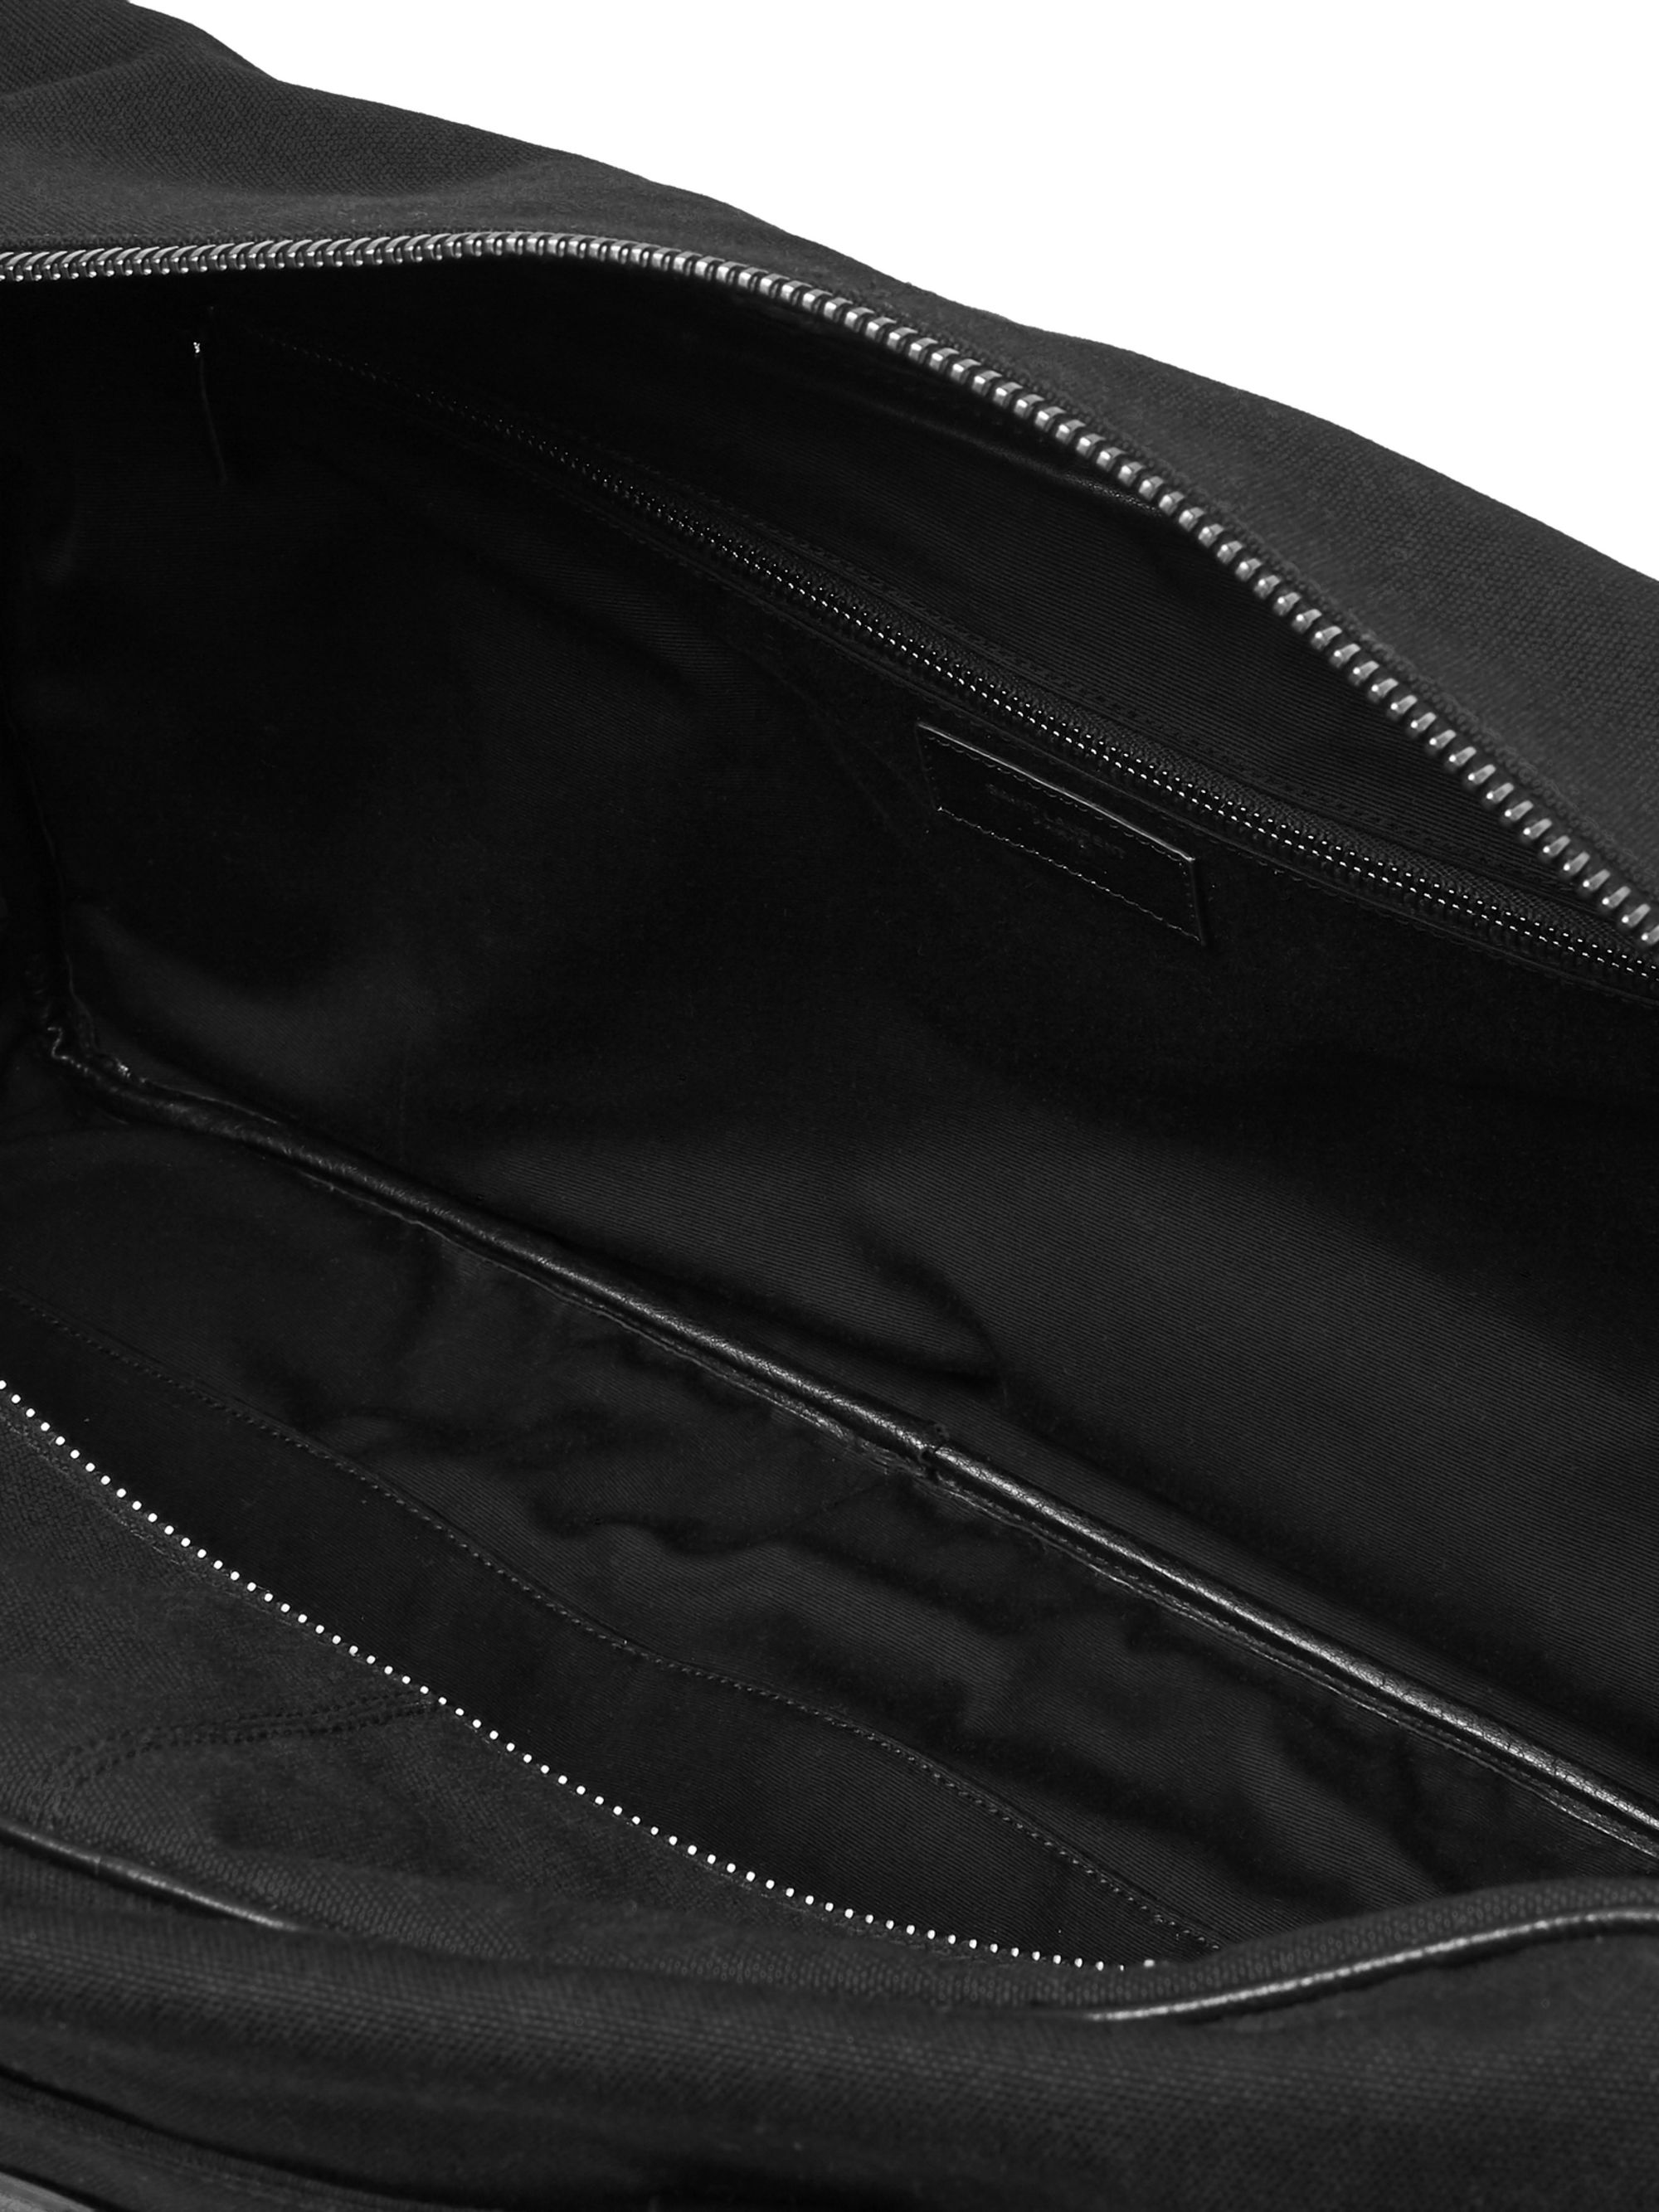 SAINT LAURENT Leather-Trimmed Canvas Holdall